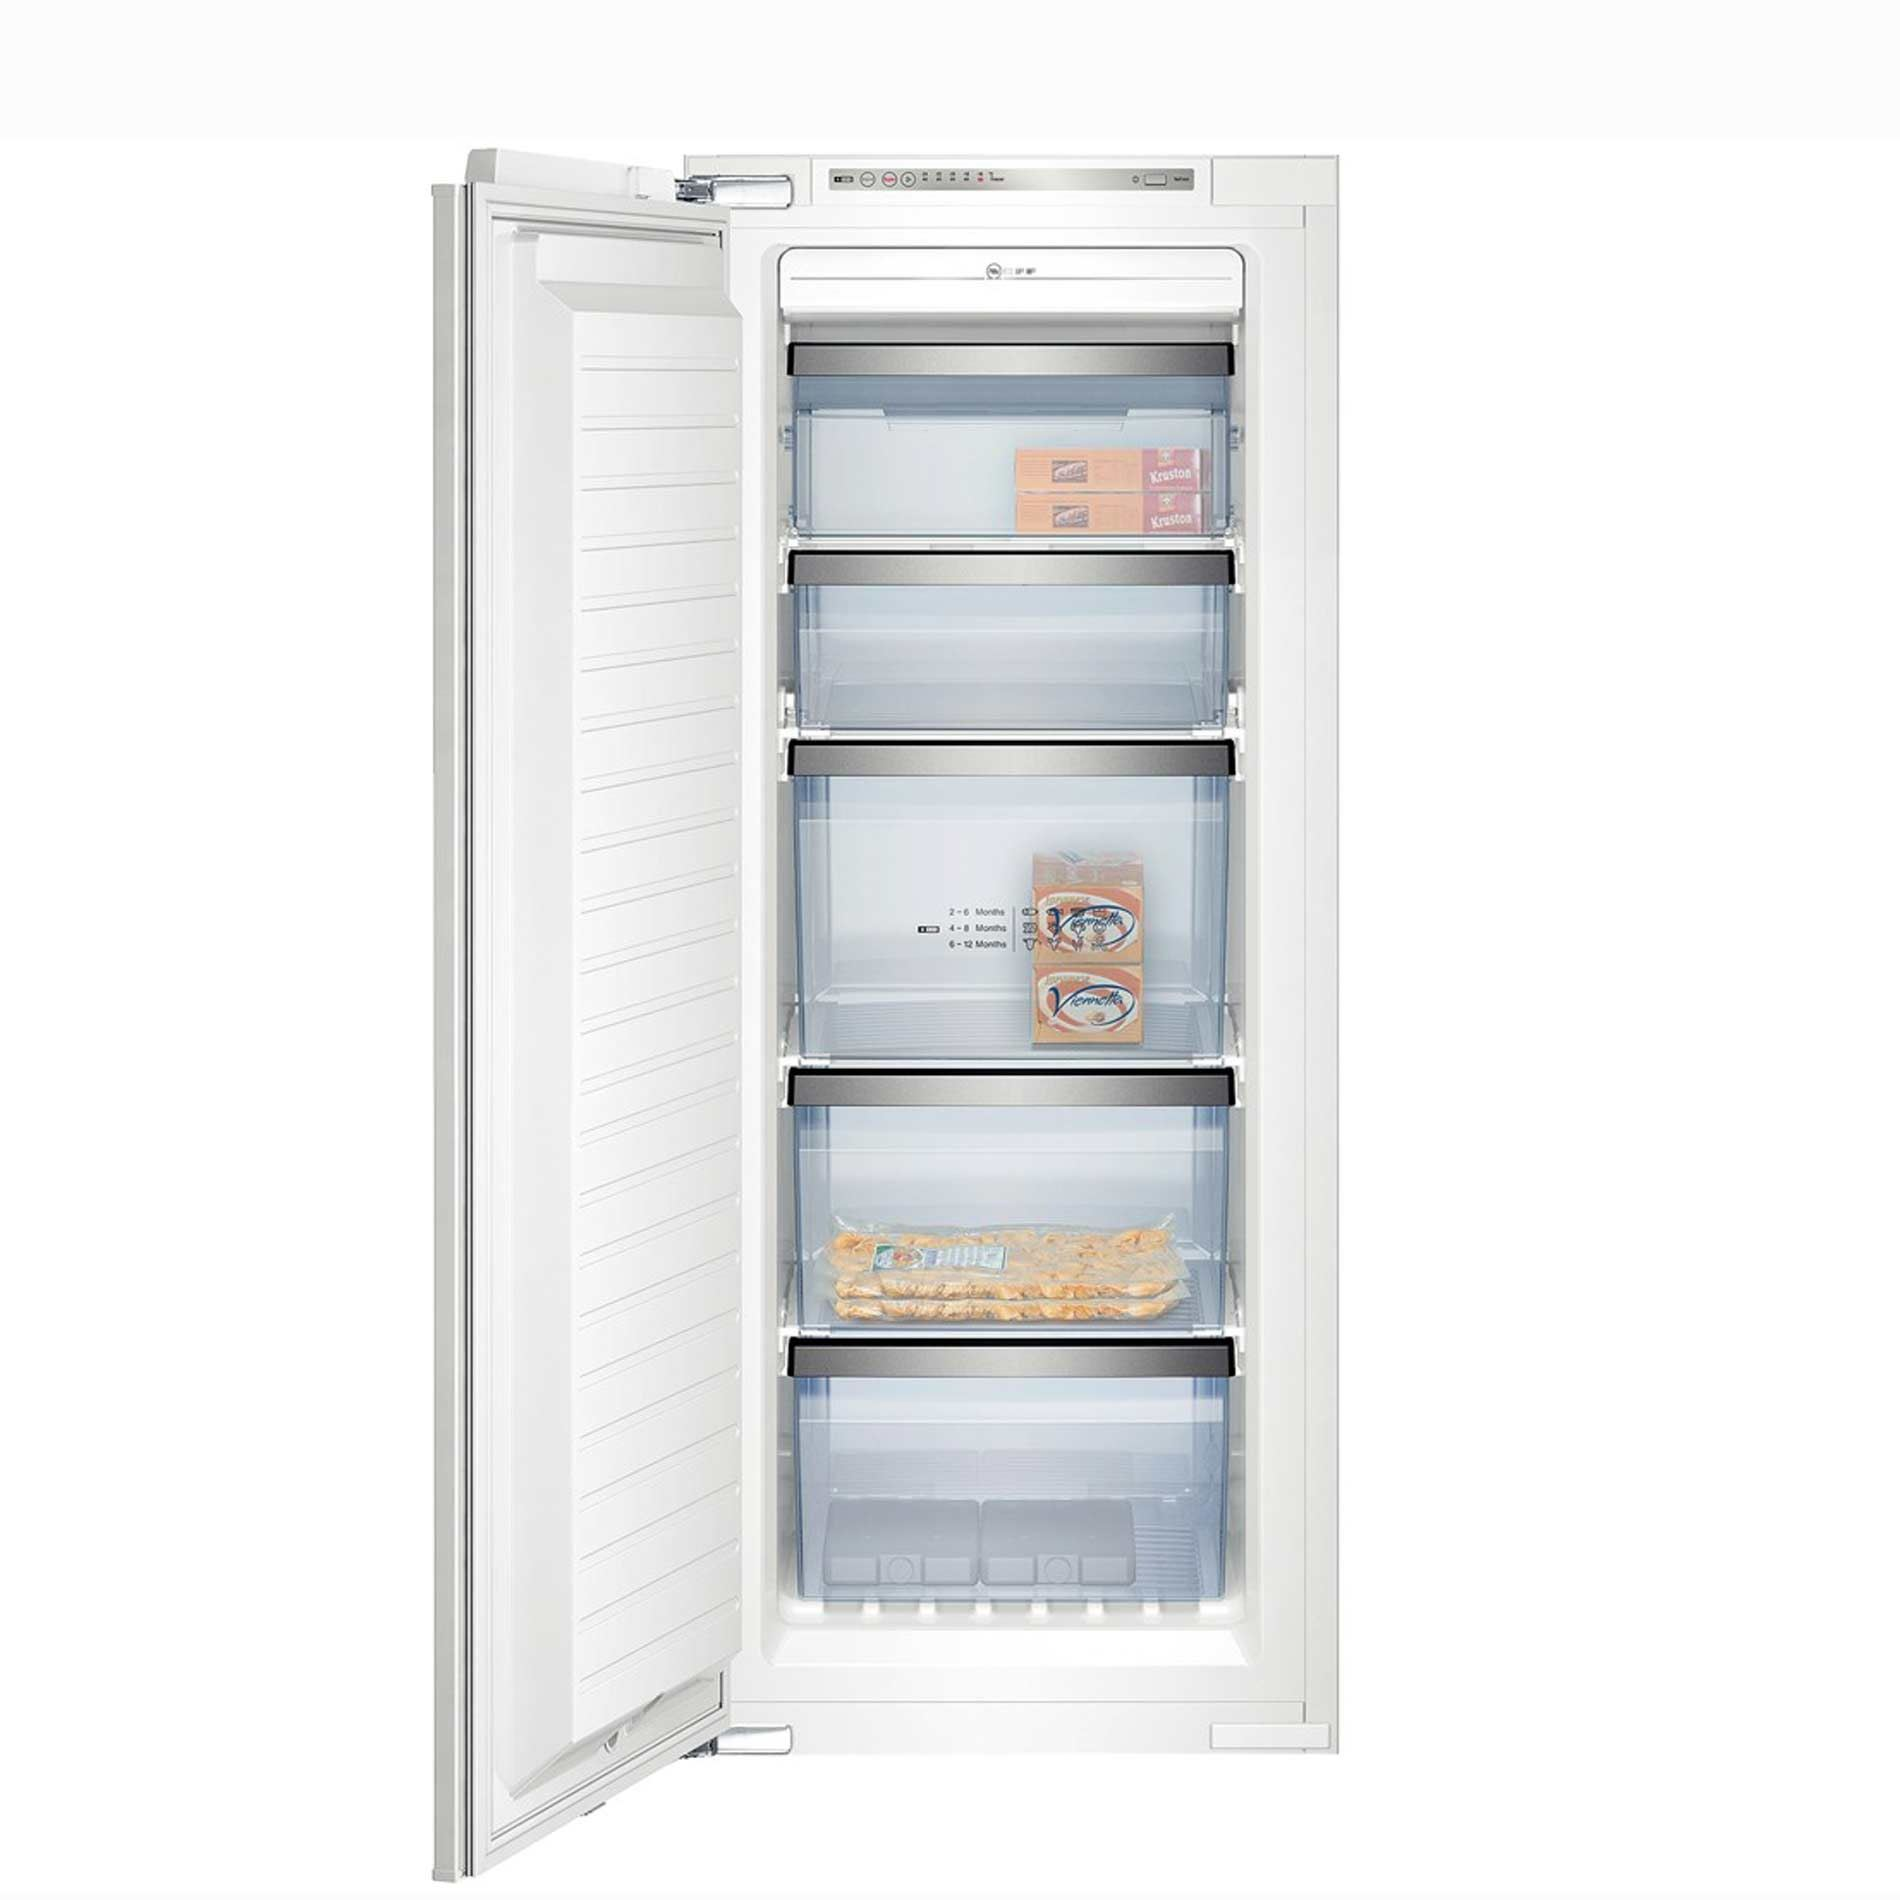 Picture of G8120X0 Built In Freezer